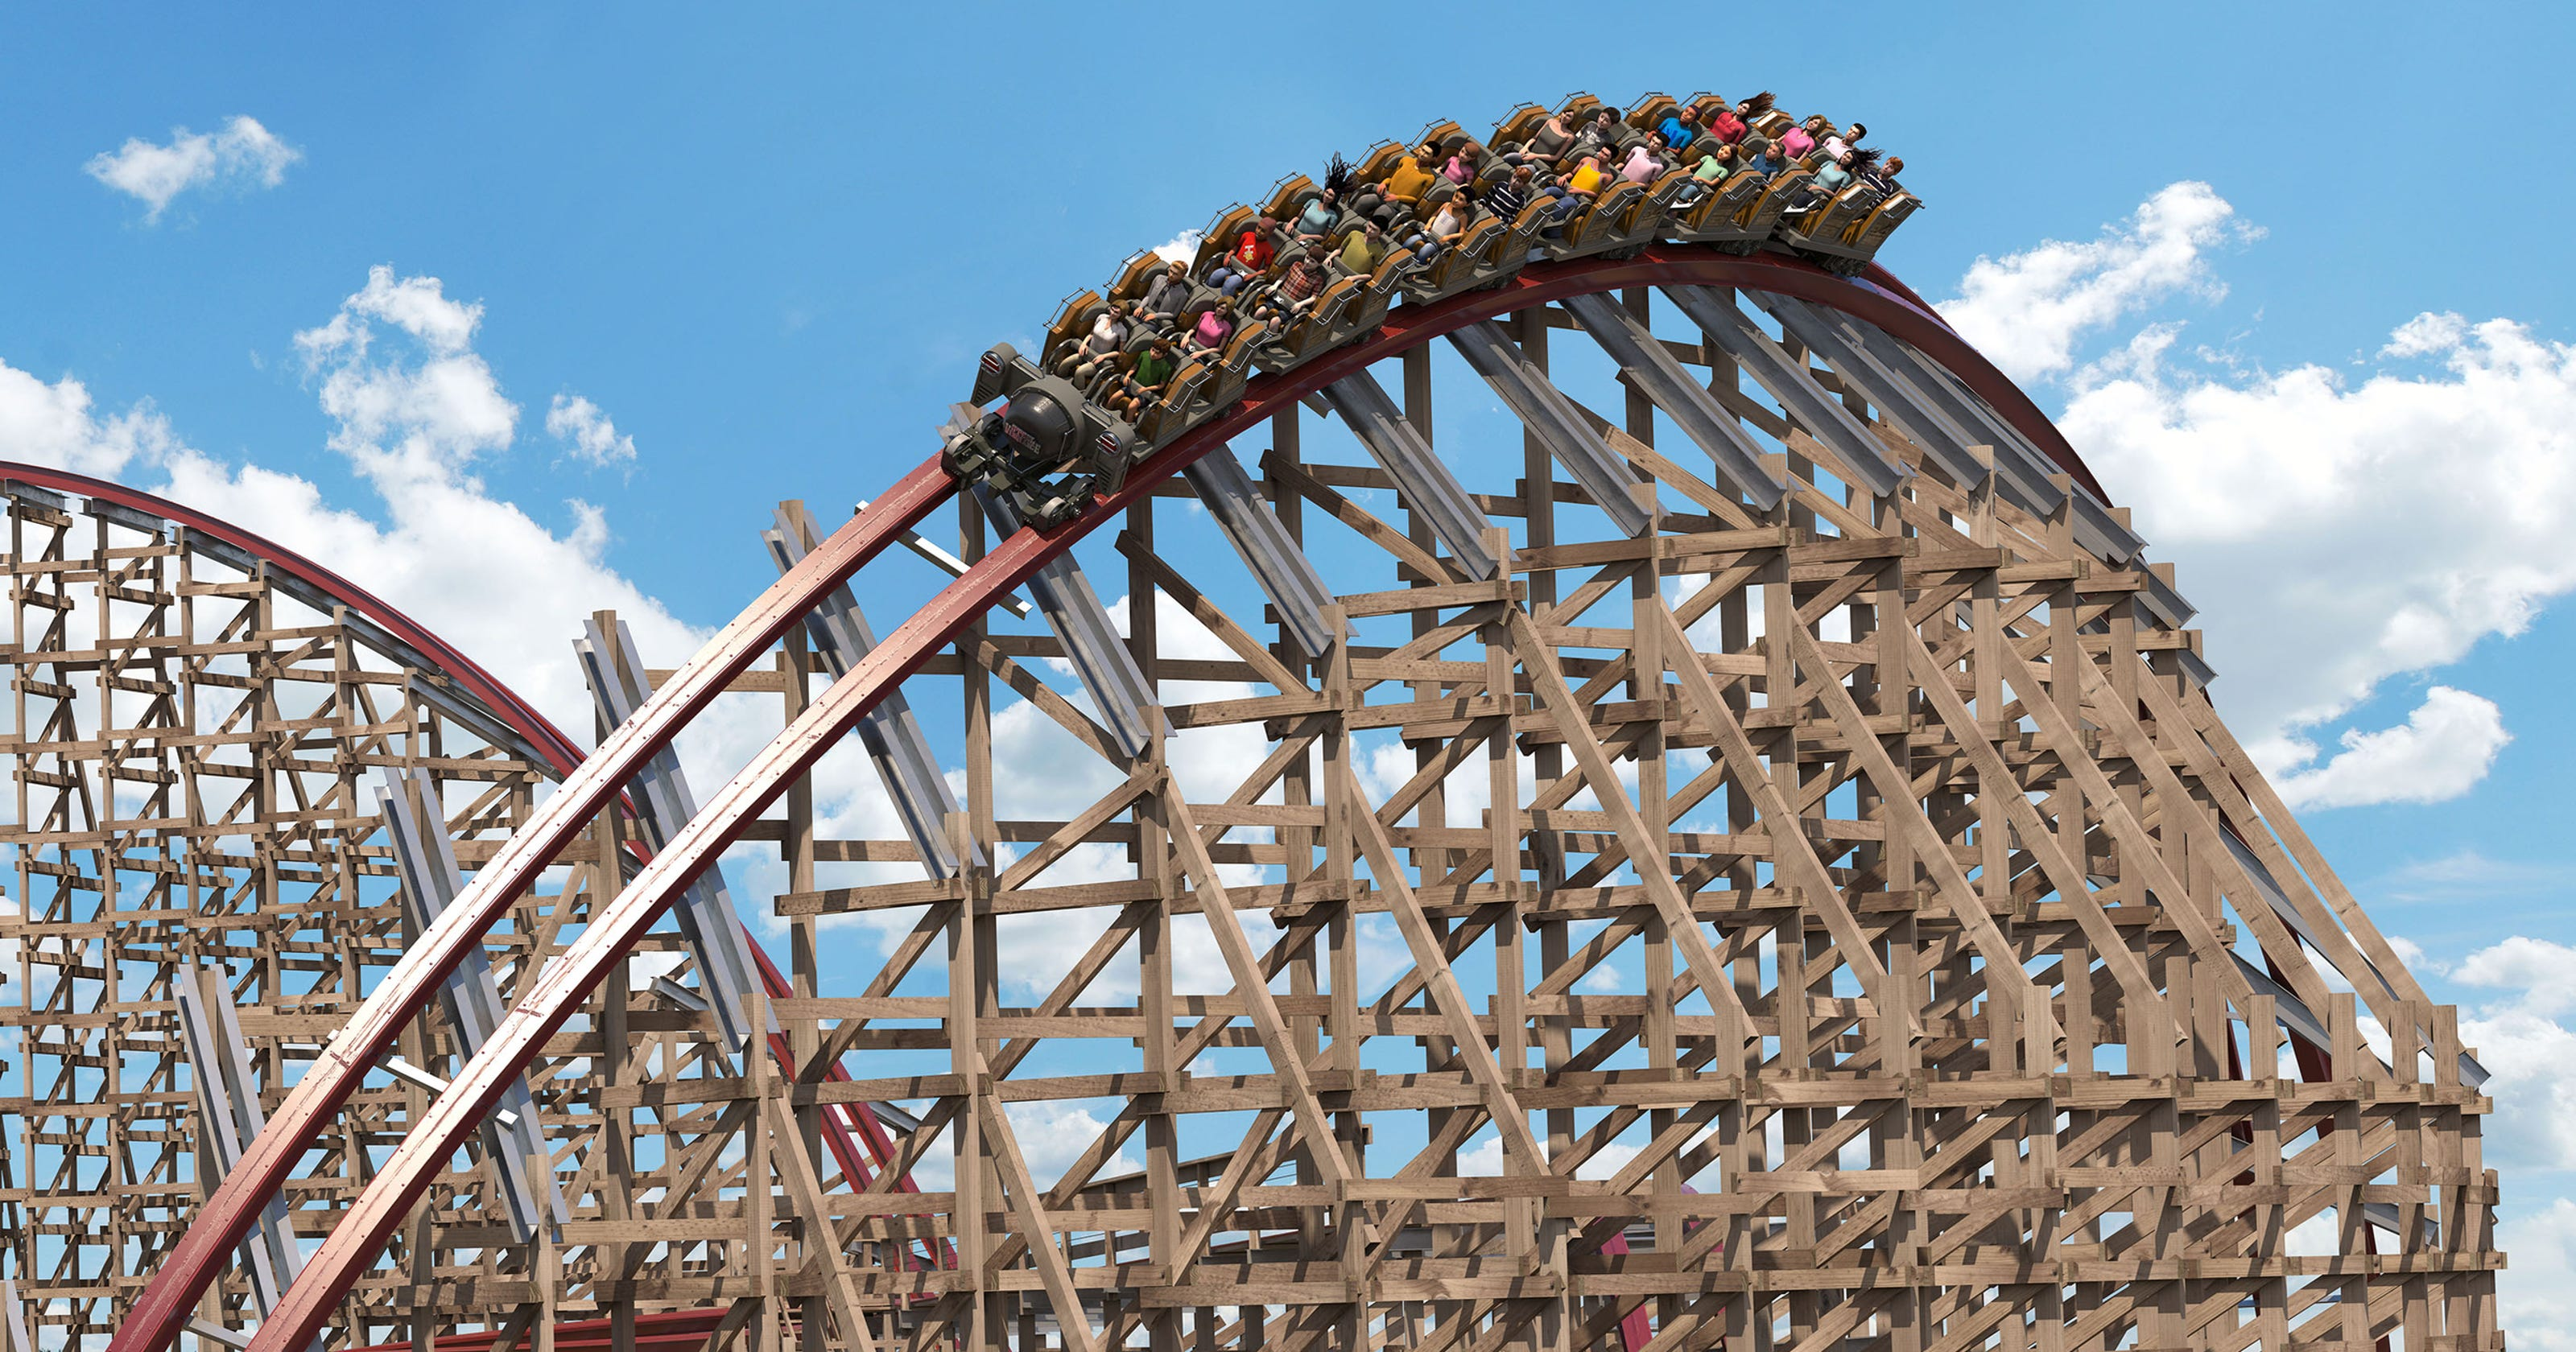 Cedar Point 2018 New Roller Coaster Higher Prices More Food Options